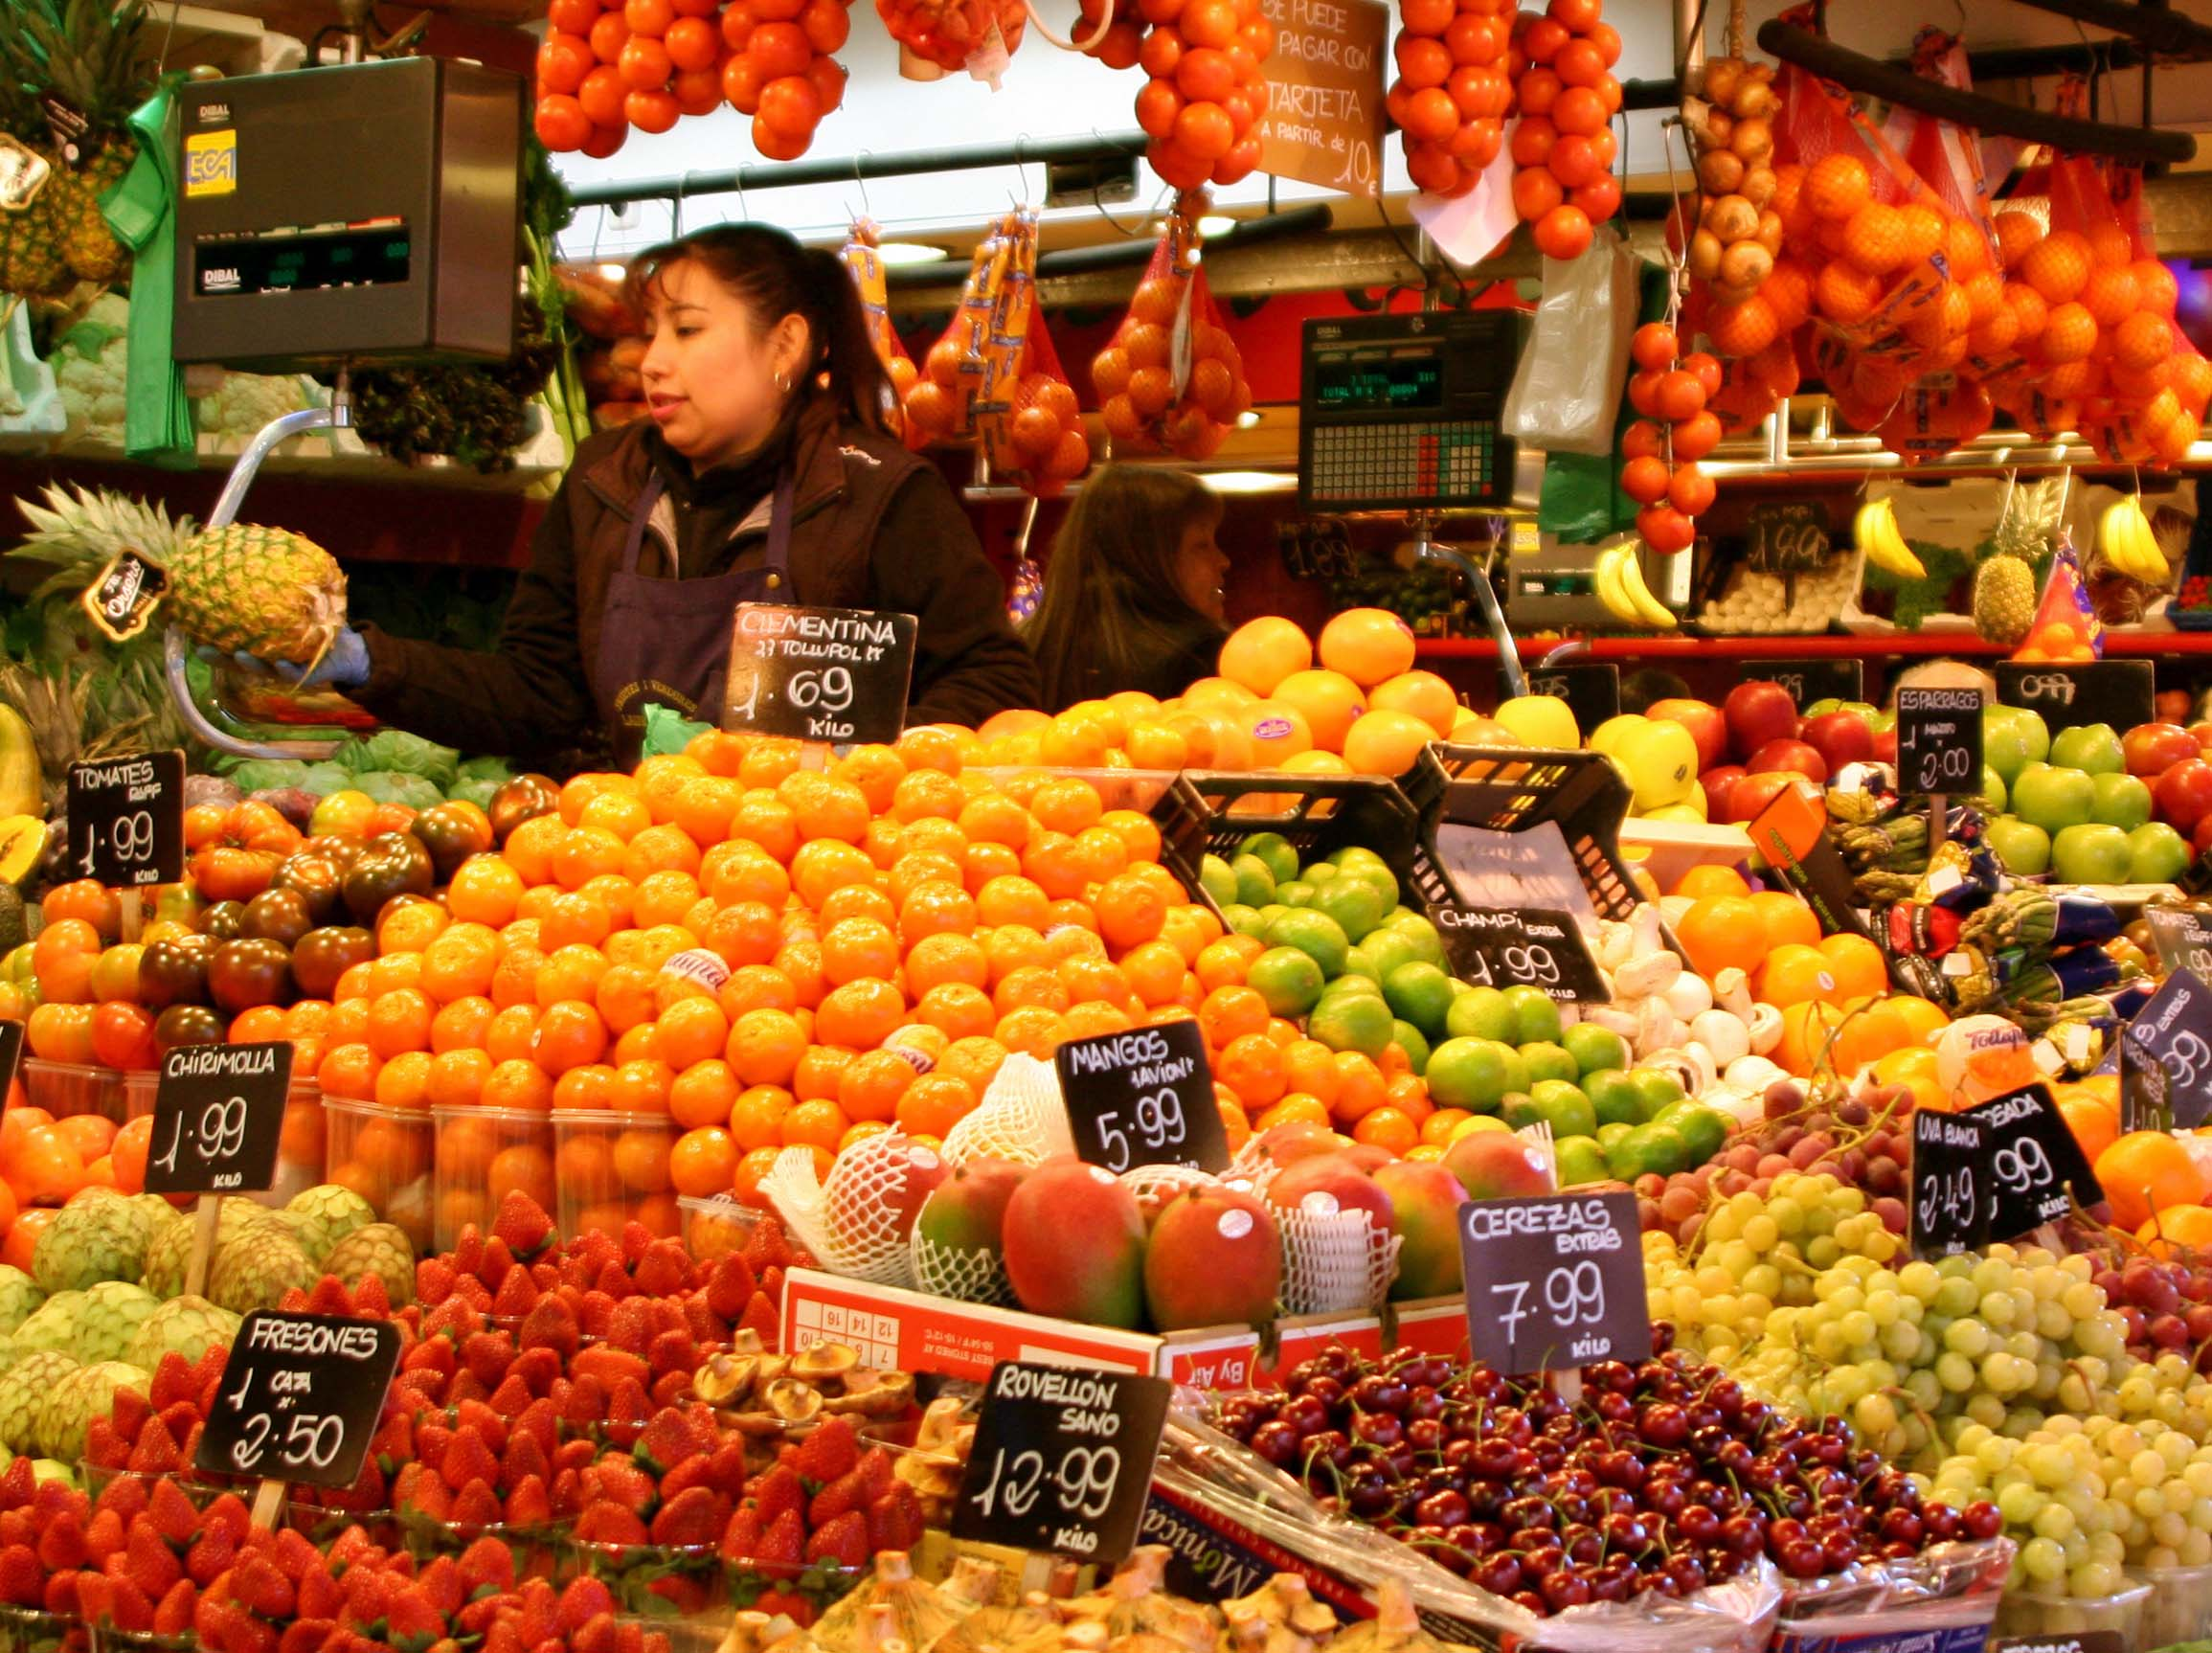 Fruit stall at La Boqueria in Barcelona